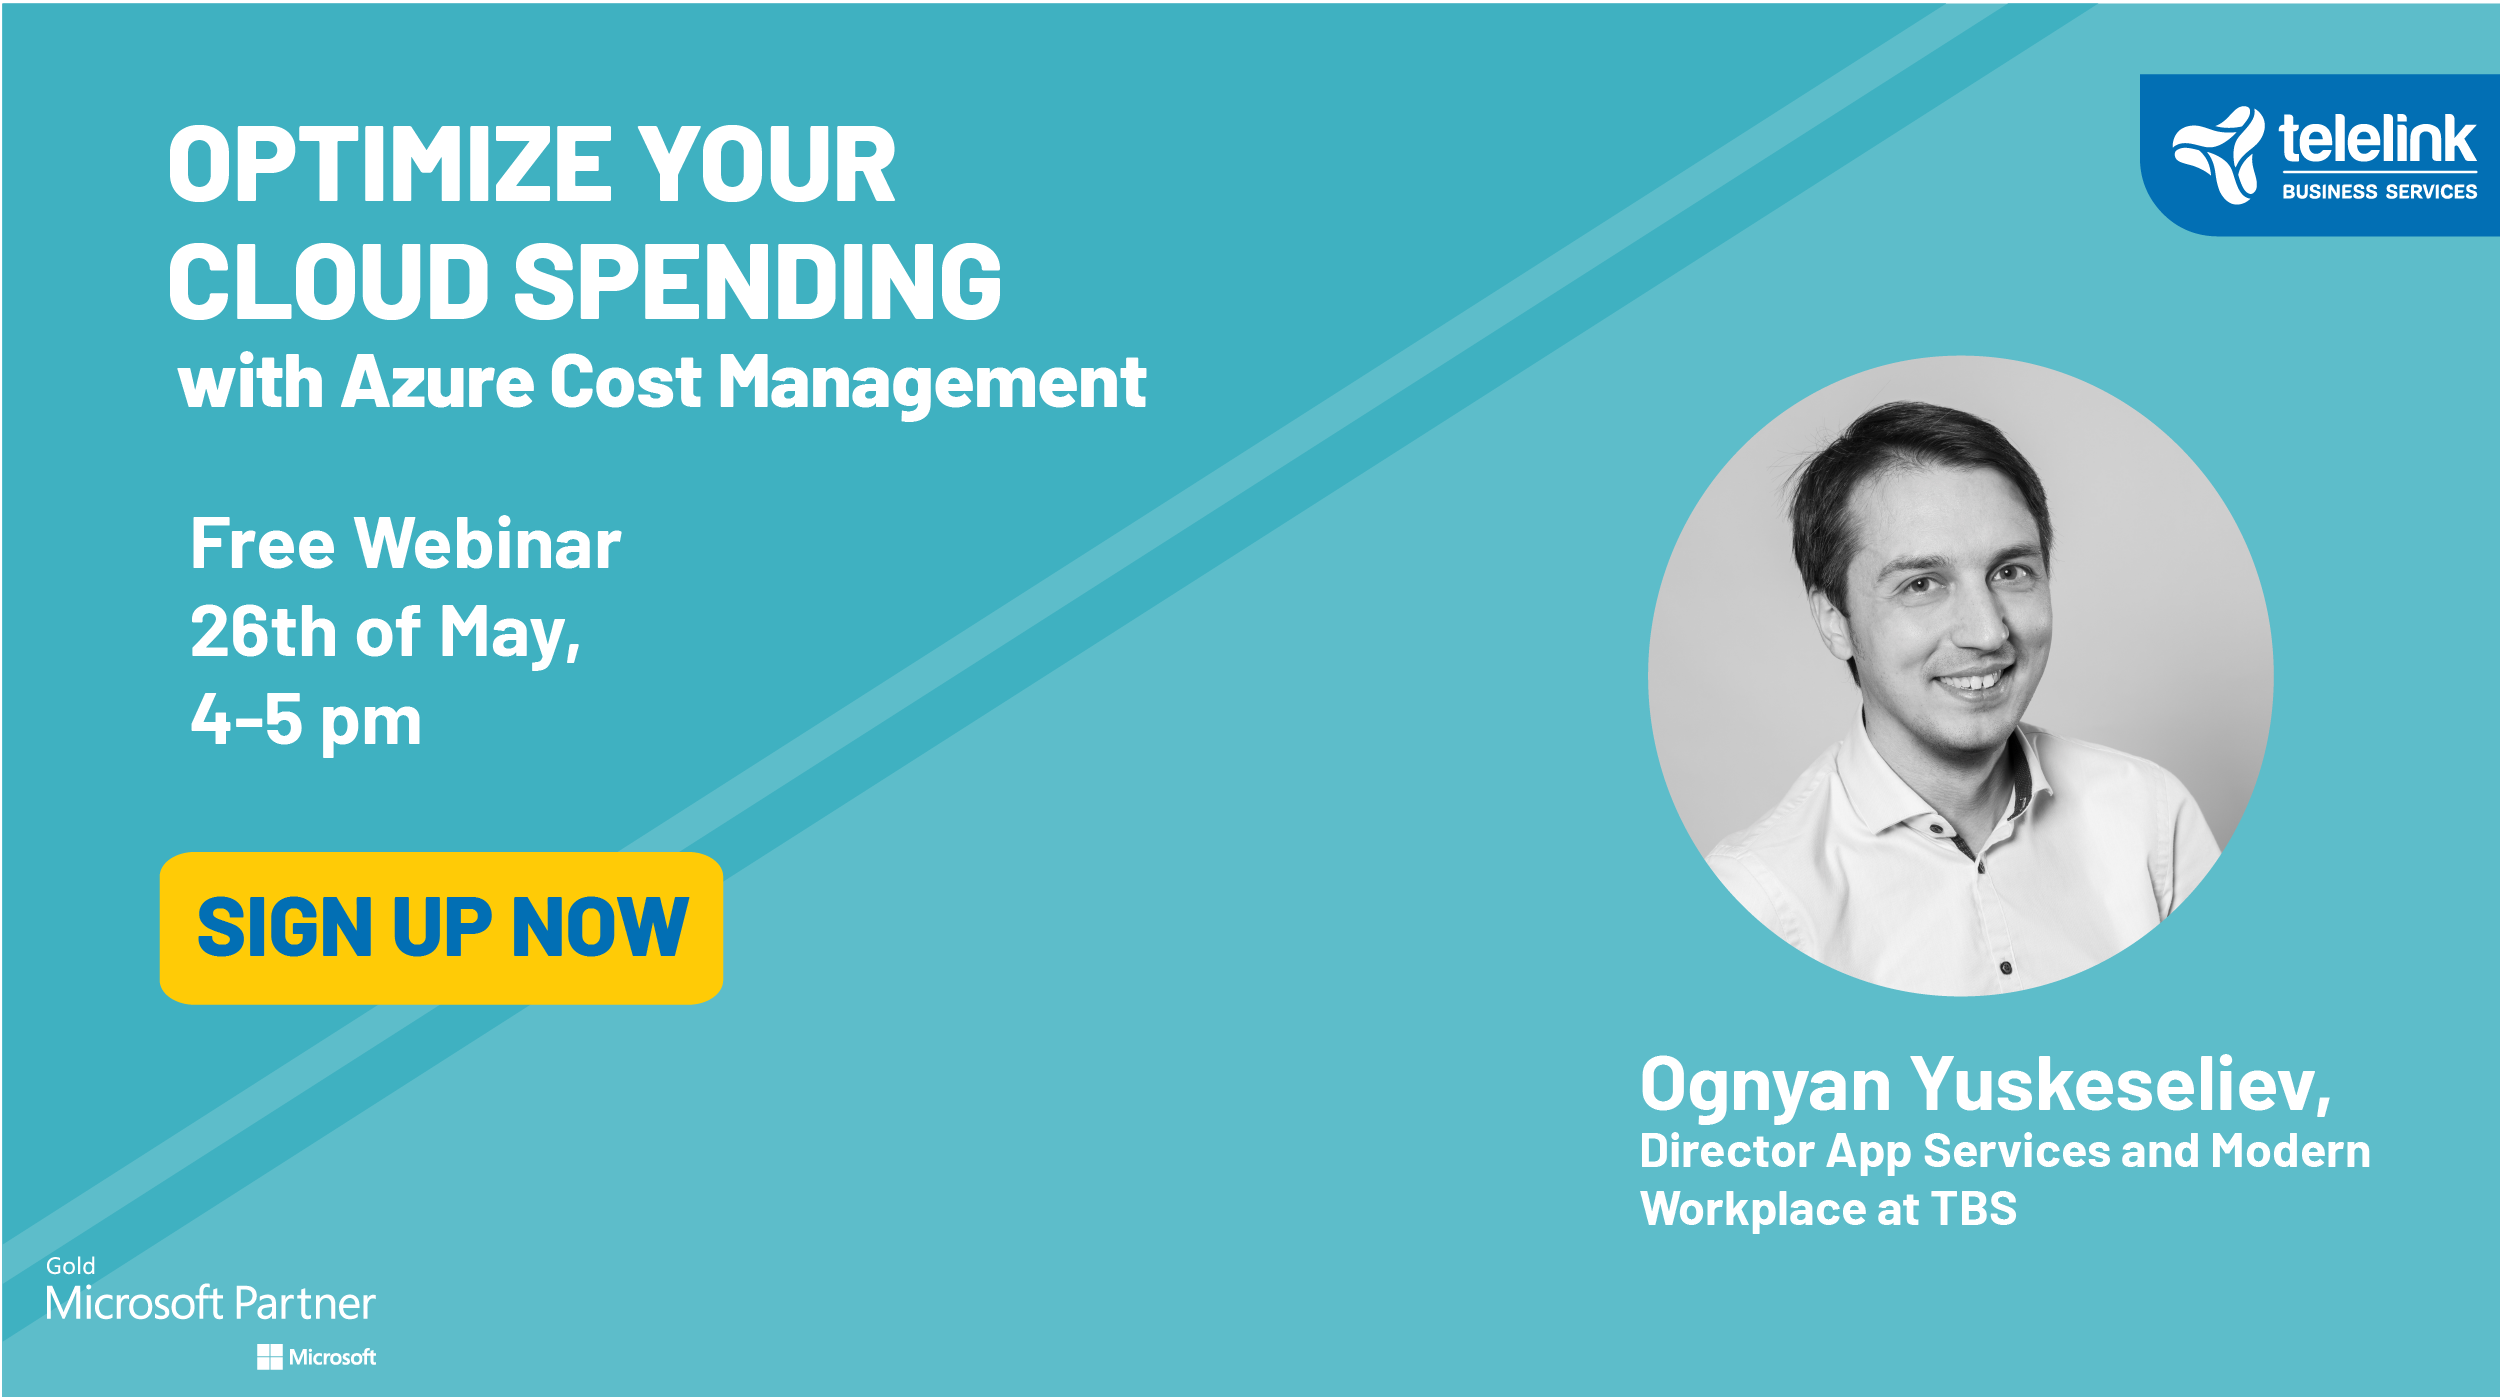 Optimize your cloud spending with Azure Cost Management